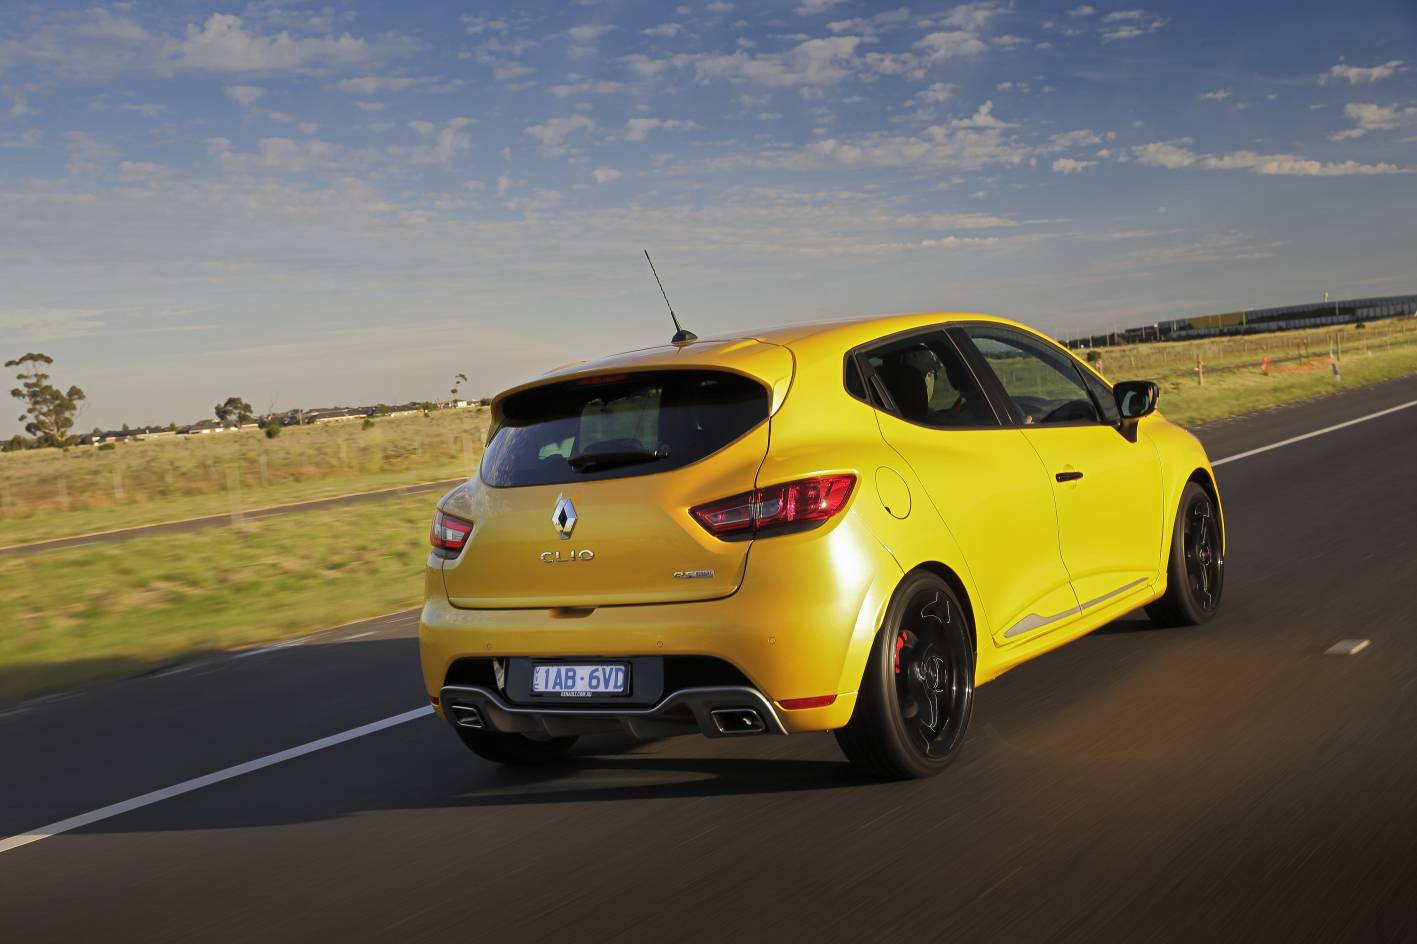 2018 Renault Clio RS 200 photo - 5